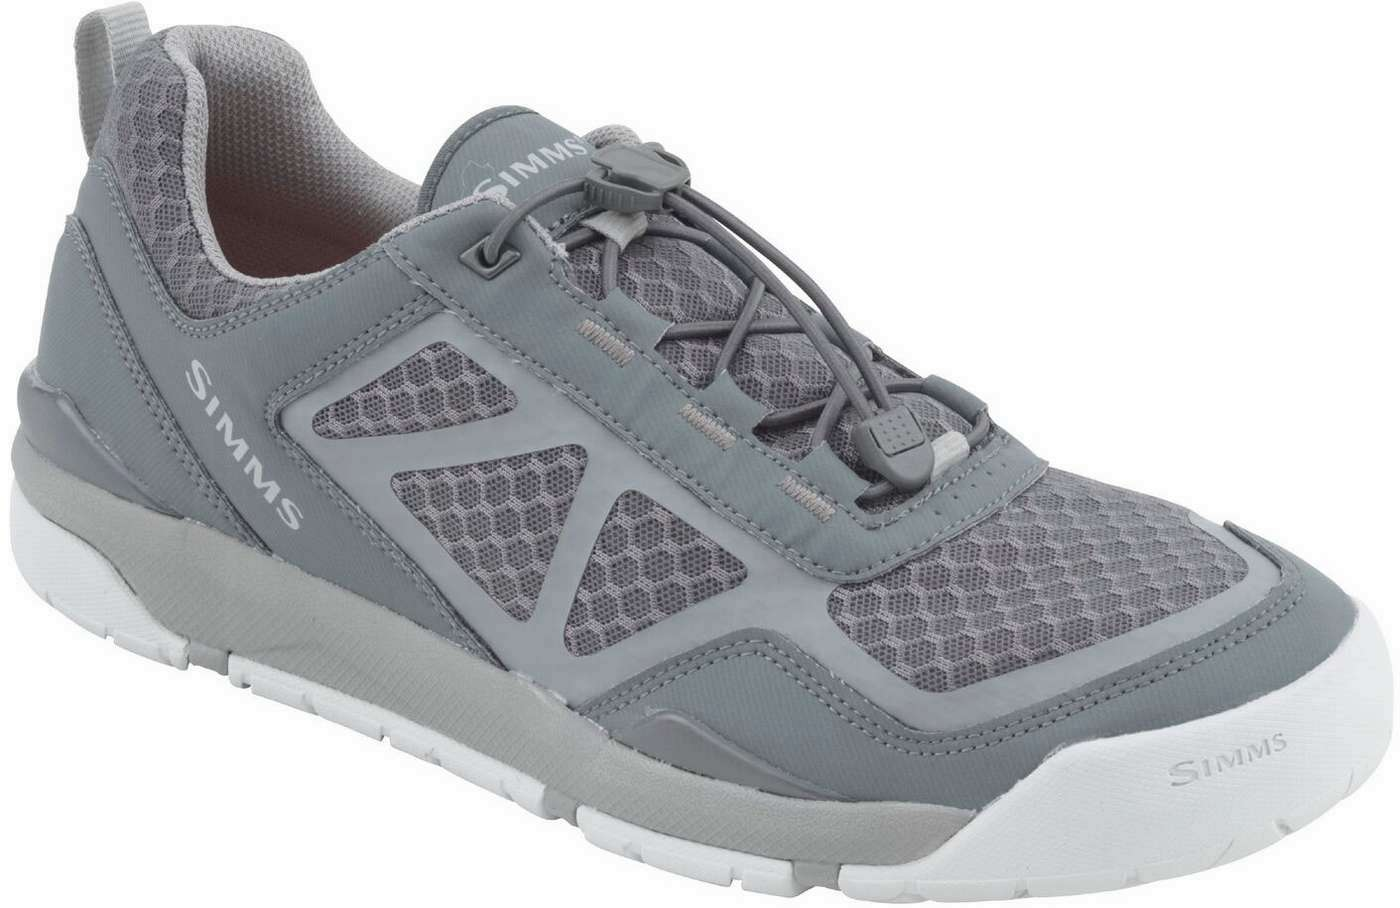 Simms Current Shoes Women Best Price